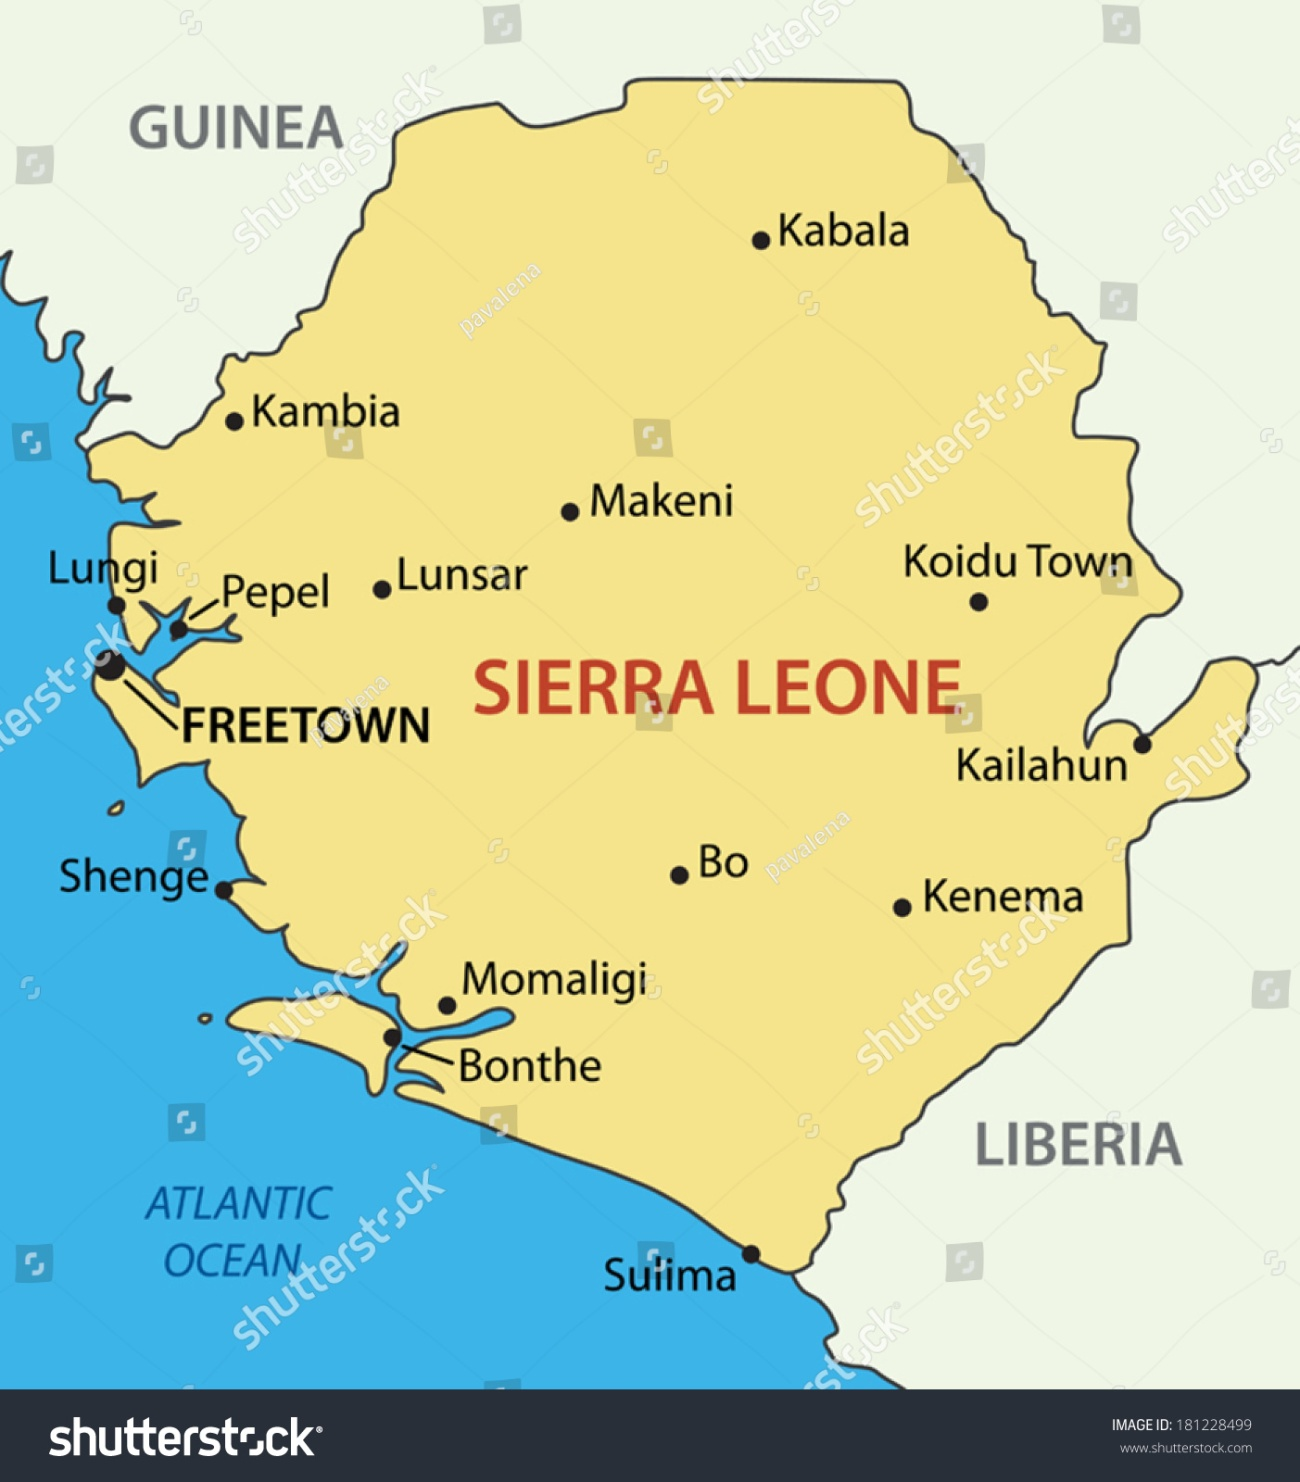 Republic-of-Sierra-Leone